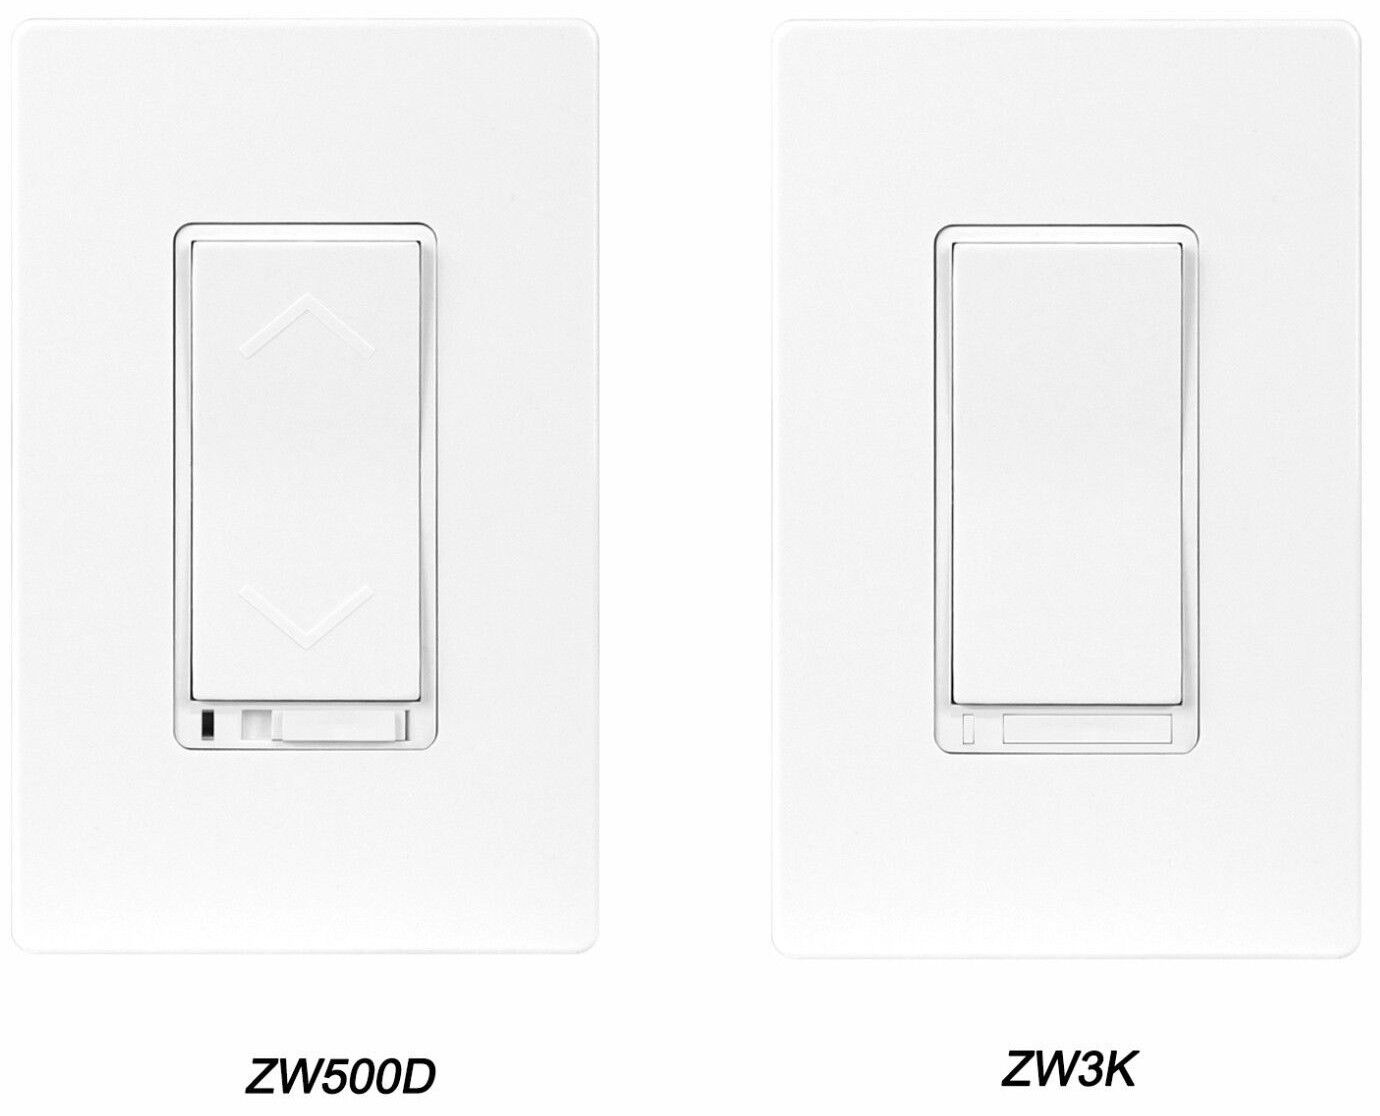 z wave wireless control in wall 3 way dimmer smart switch starter kit ebay. Black Bedroom Furniture Sets. Home Design Ideas